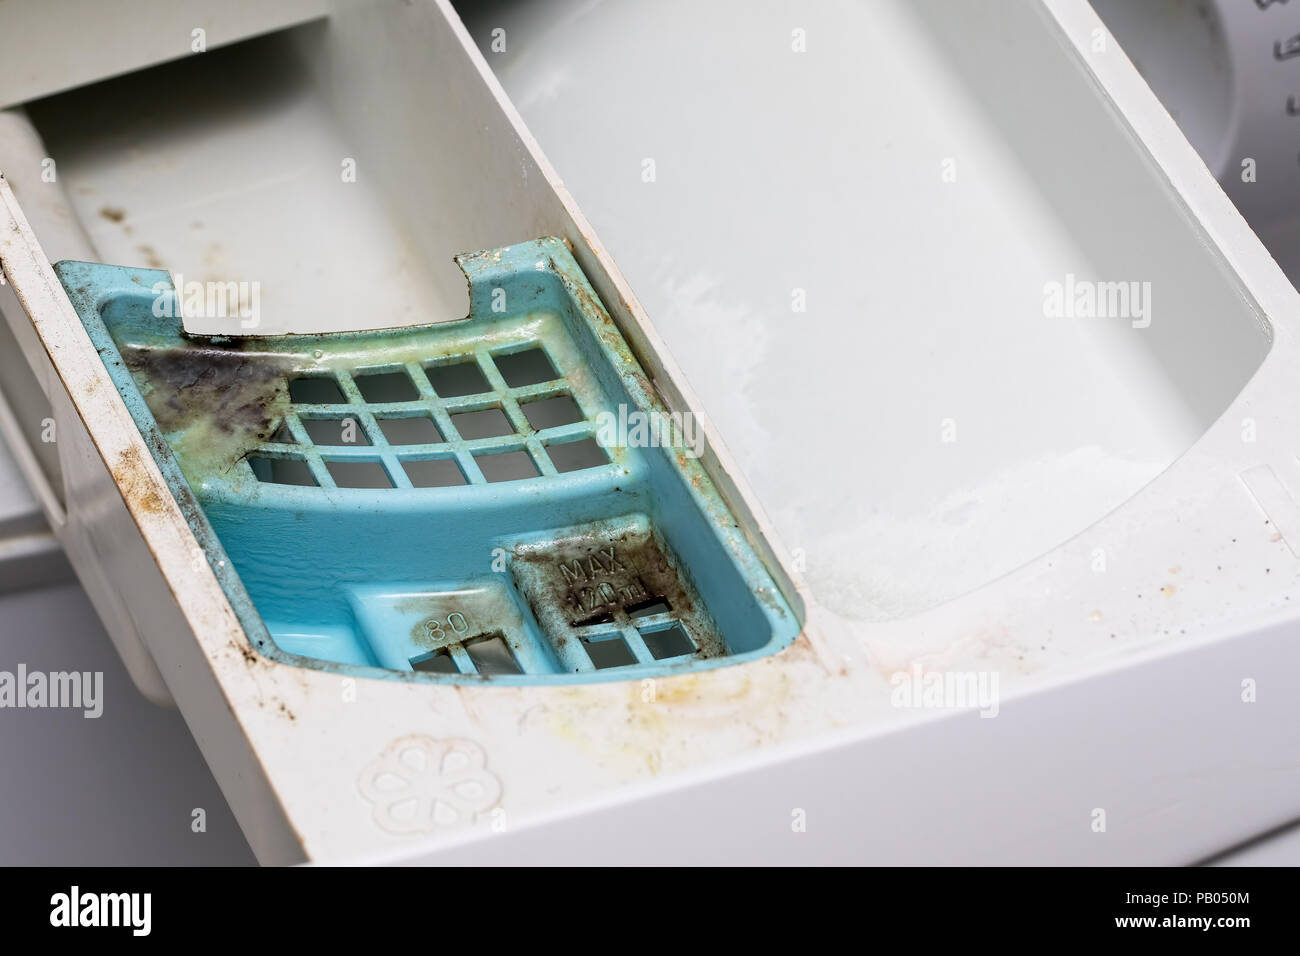 Dirty mouldy washing machine detergent and fabric conditioner dispenser drawer. Mold and dirt in washing machine. - Stock Image